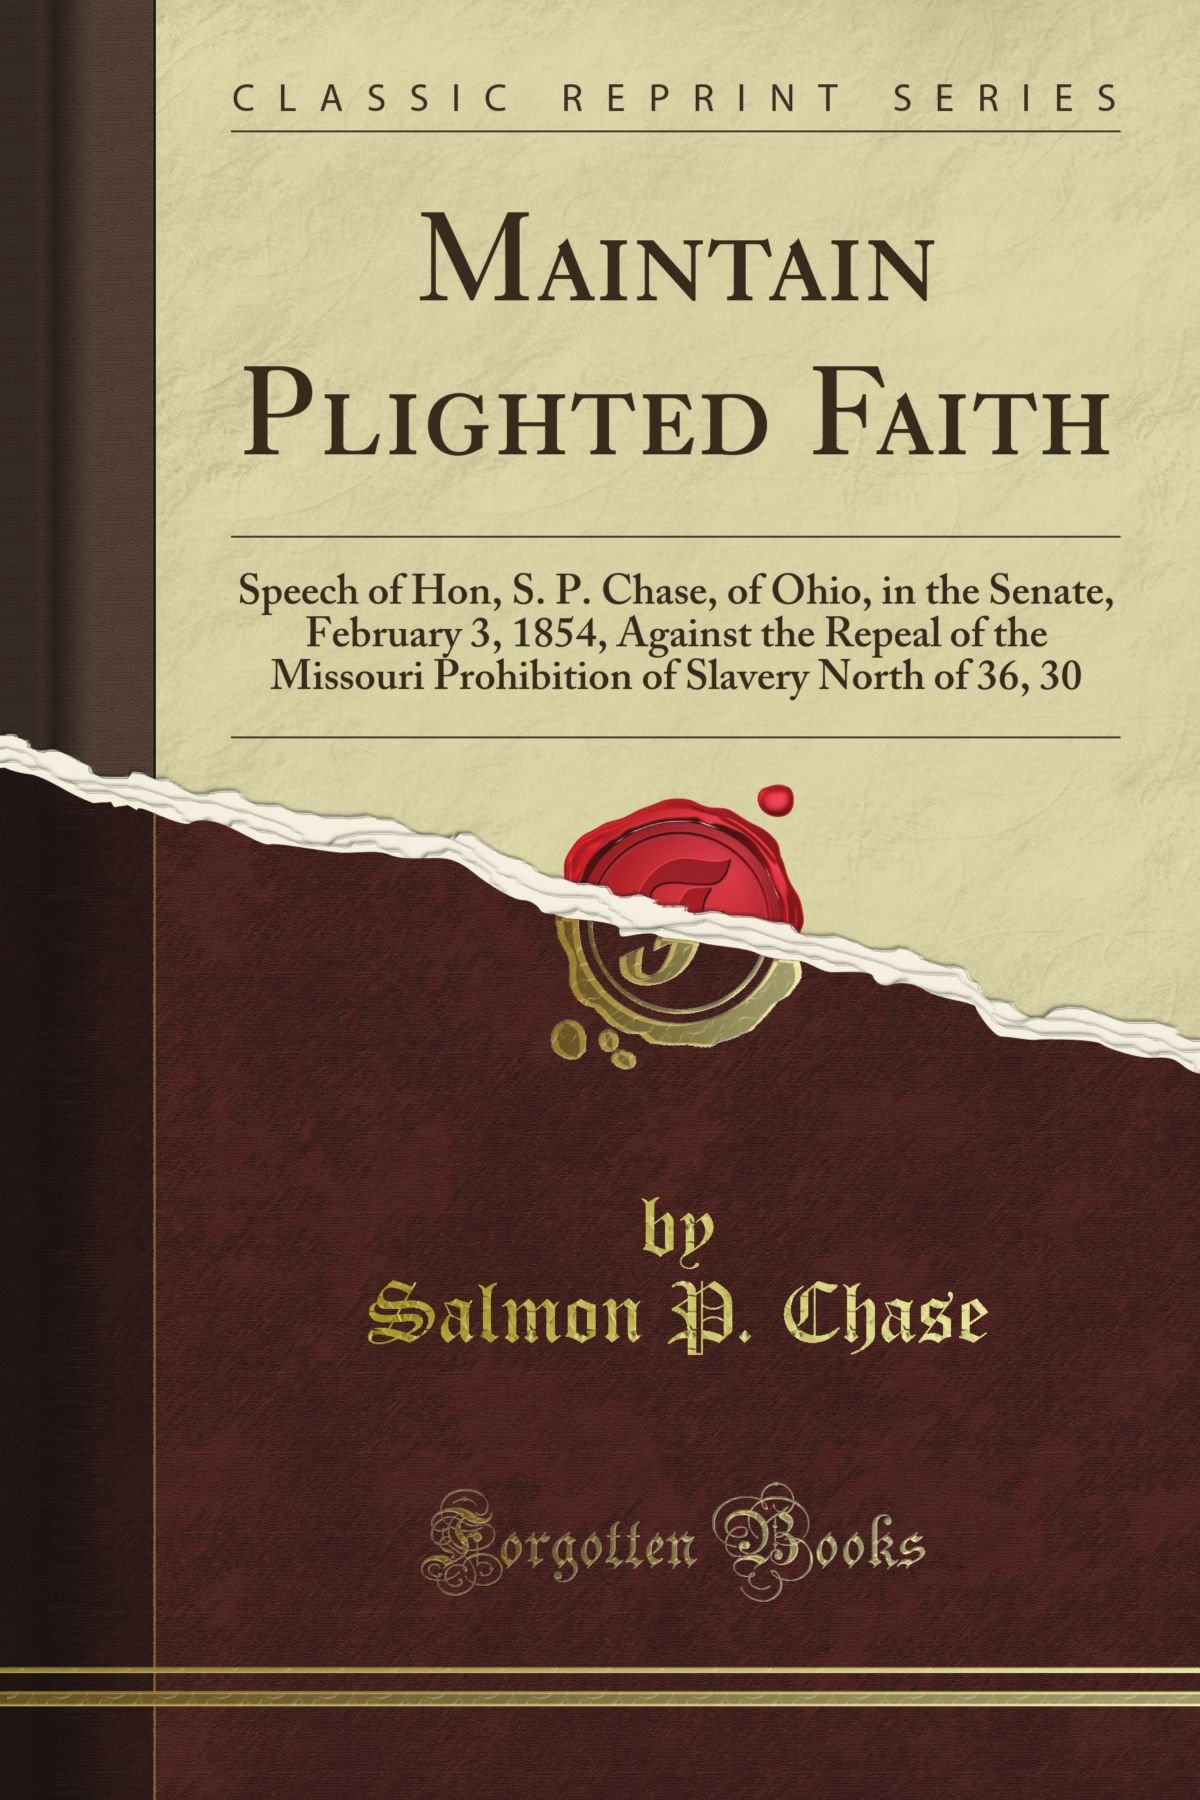 Maintain Plighted Faith: Speech of Hon, S. P. Chase, of Ohio, in the Senate, February 3, 1854, Against the Repeal of the Missouri Prohibition of Slavery North of 36, 30 (Classic Reprint) pdf